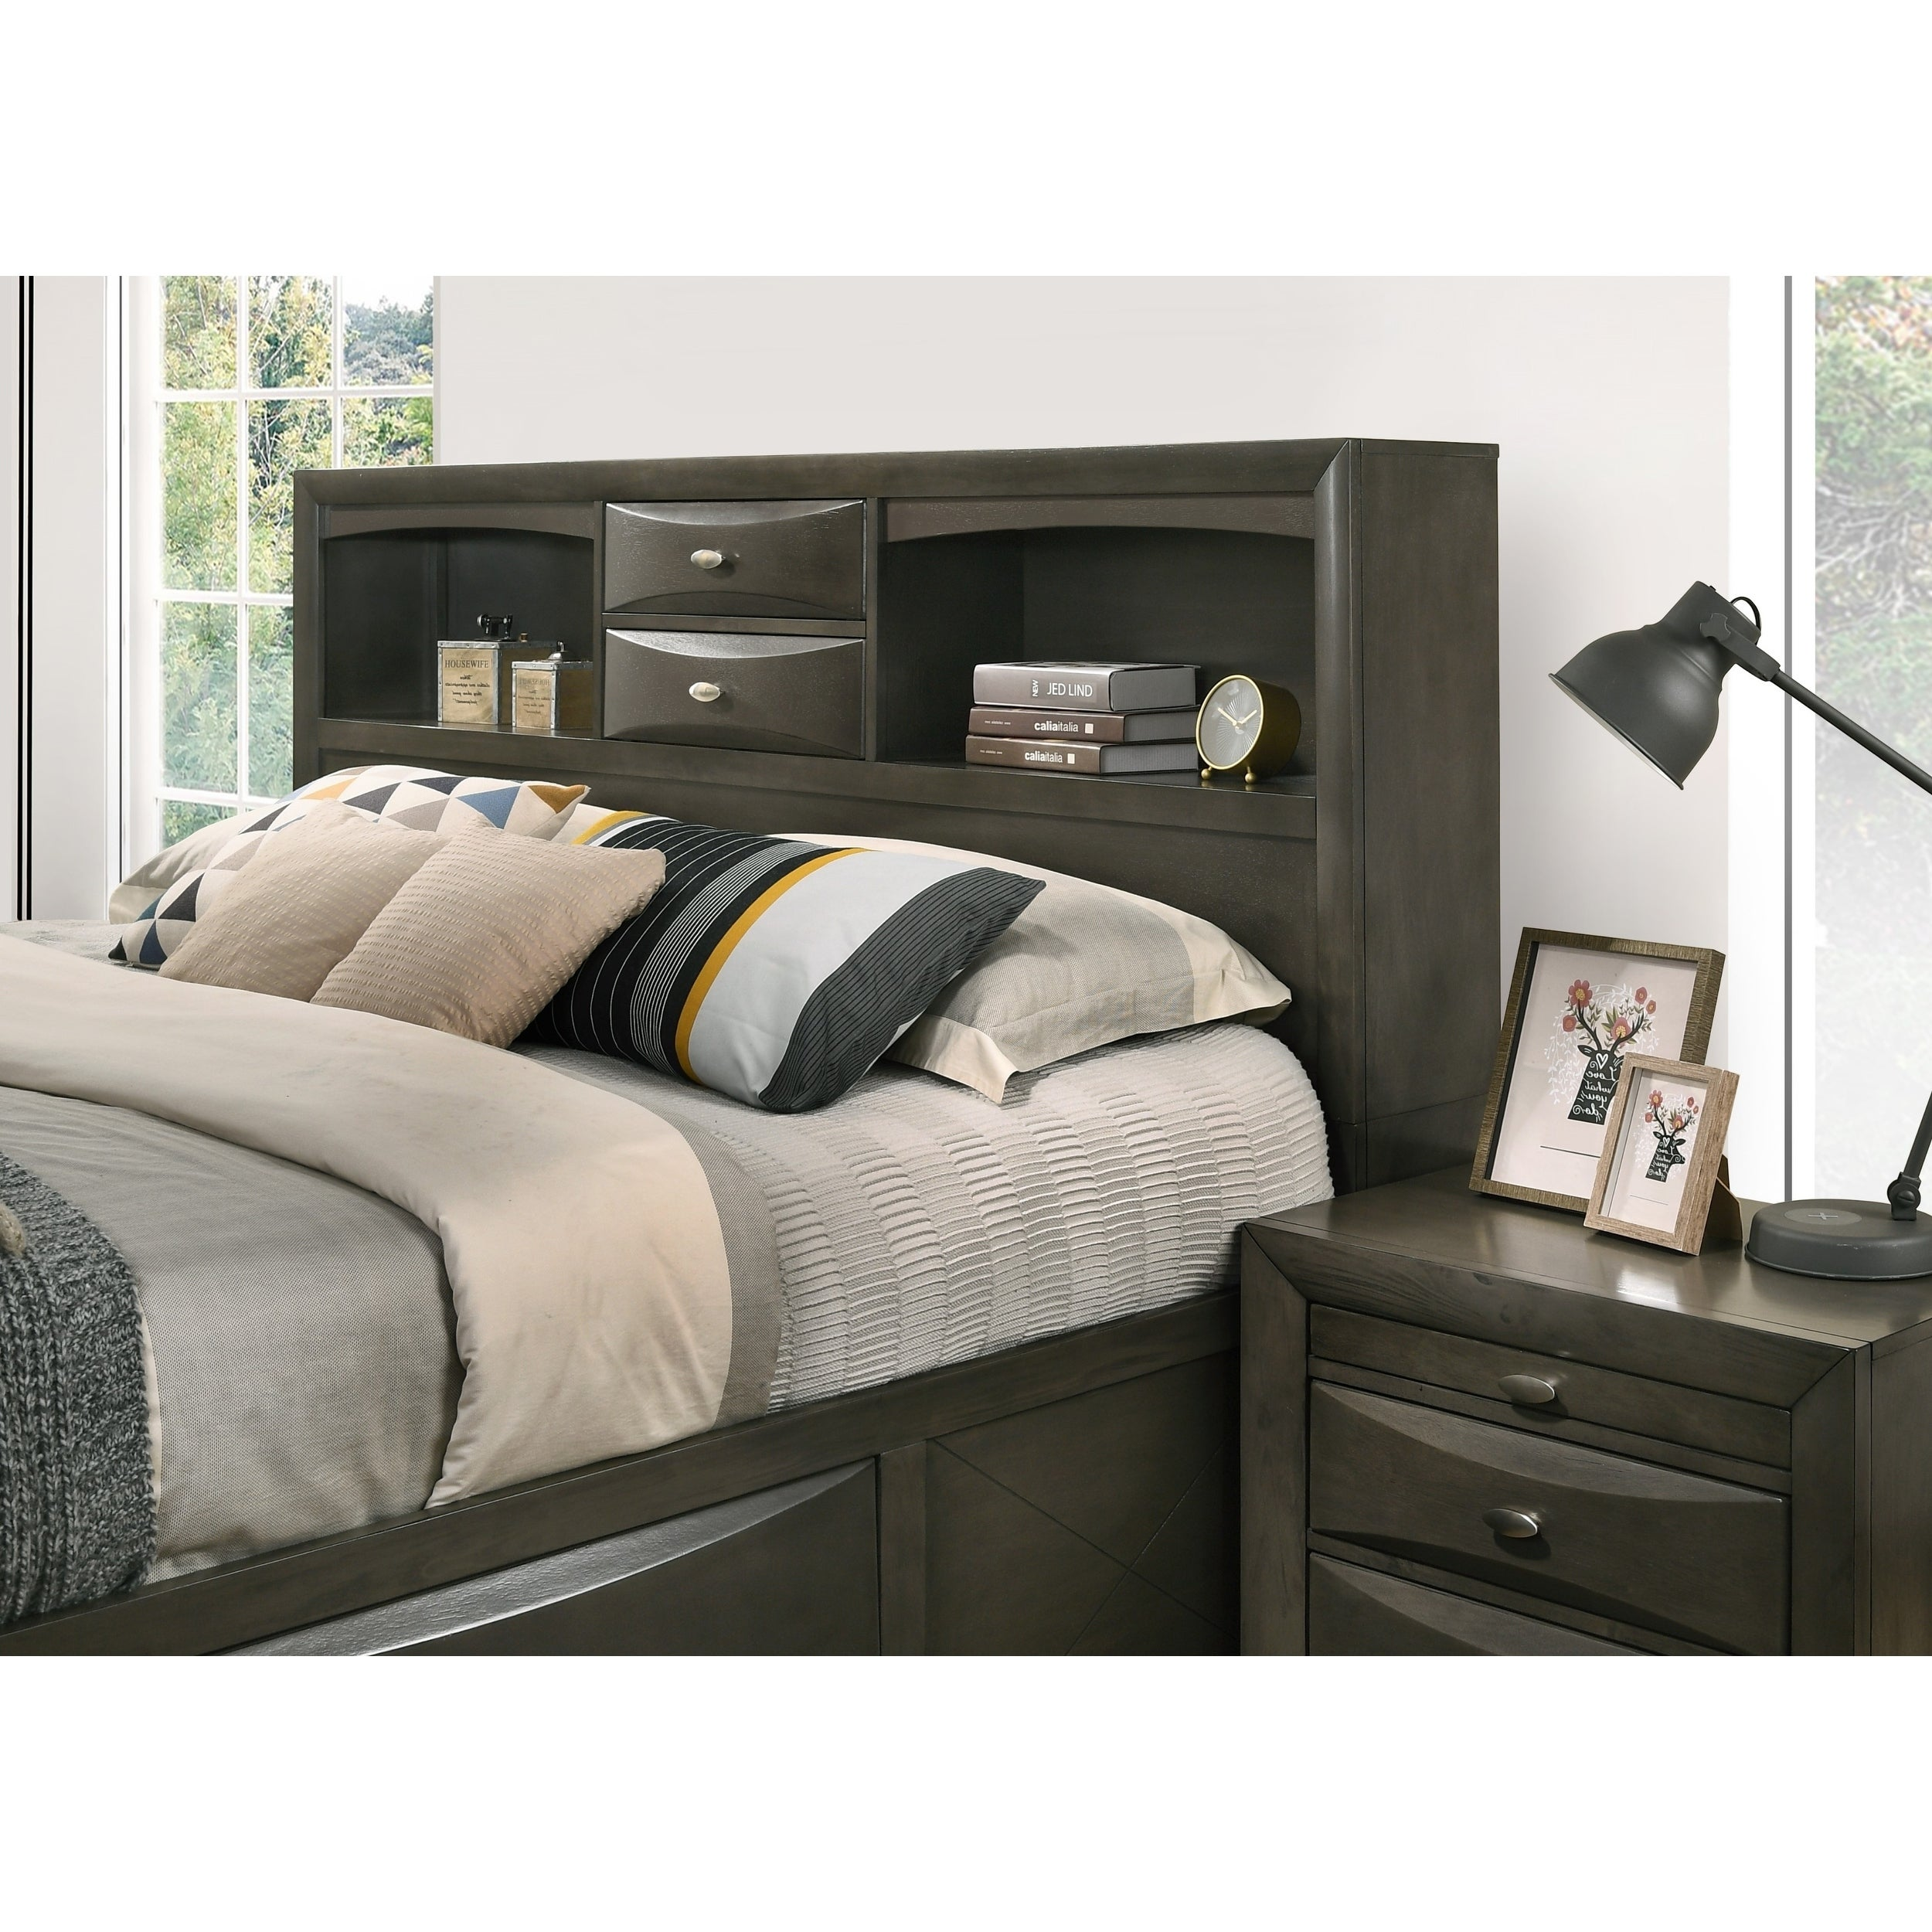 Shop Leslie Bookcase Headboard Storage Platform Bed  Ships To